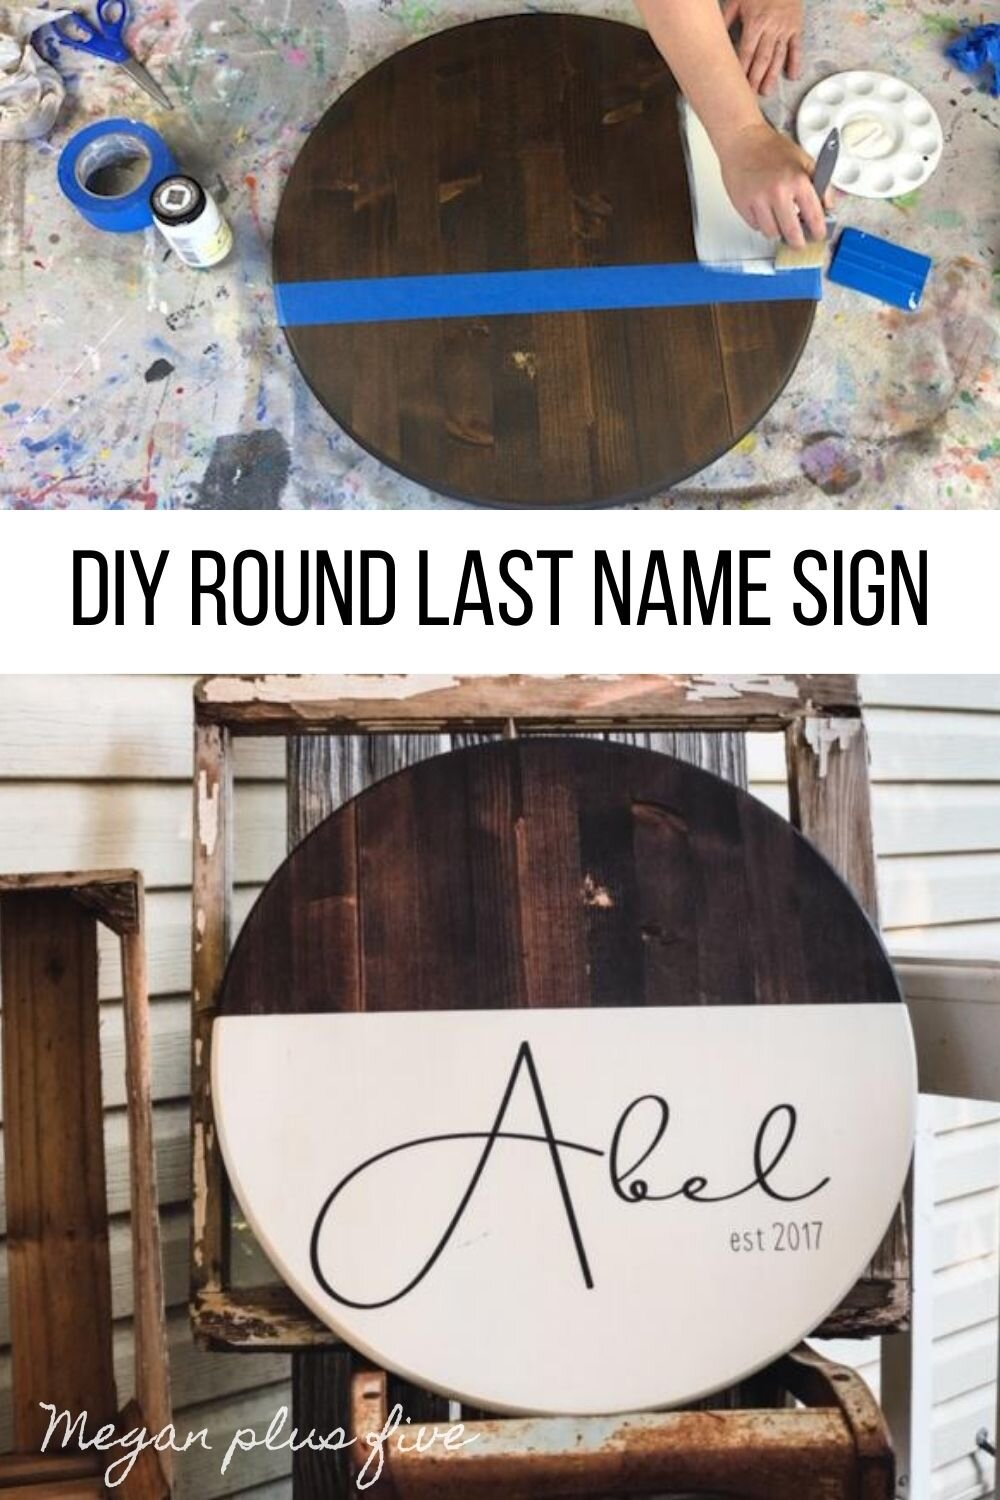 DIY modern farmhouse round last name established sign. How to make a personalized round wood sign. DIY round wood door hanger for last names. Half stained half painted round wooden sign how to tutorial.